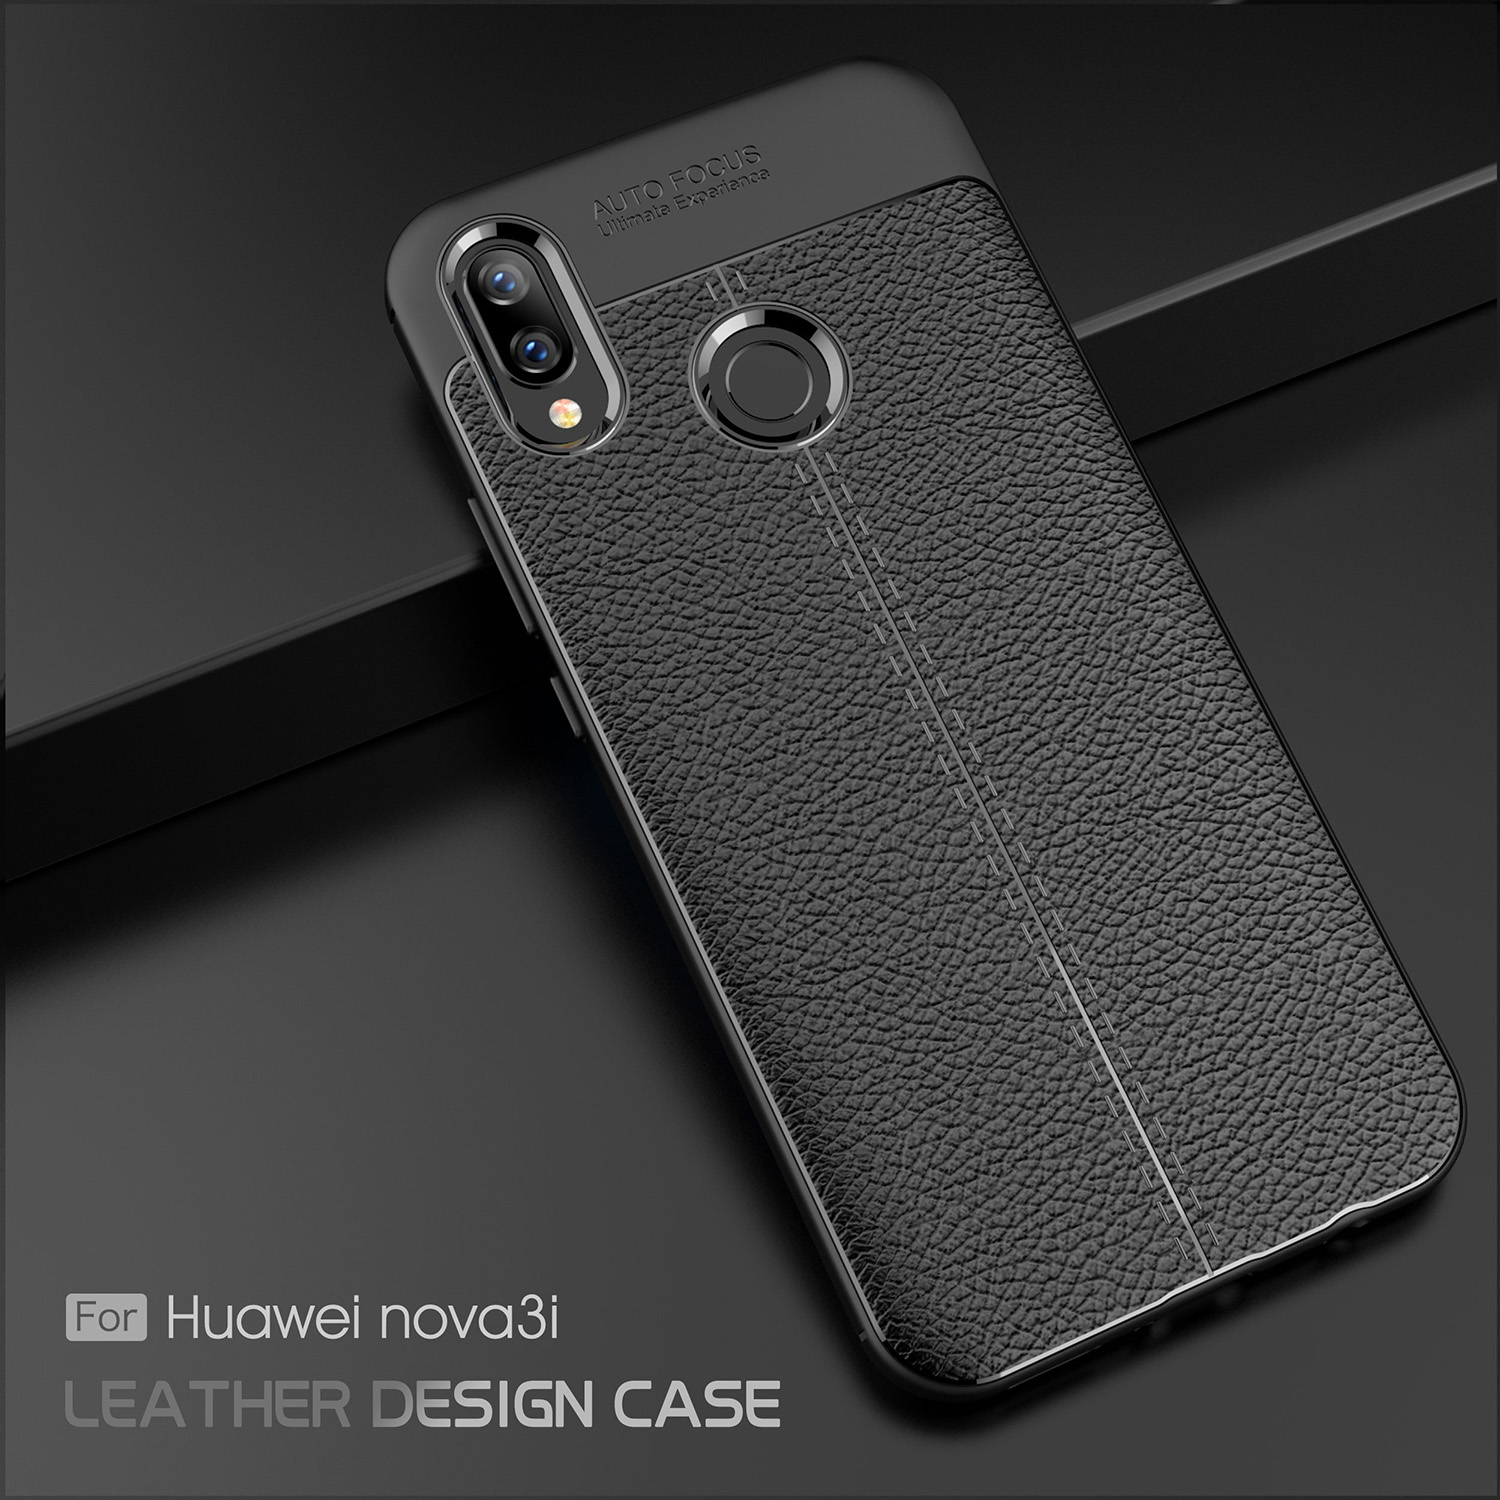 Slim Shockproof Case Non Slip Cover Silicone Skin For Huawei Nova 3i P Smart